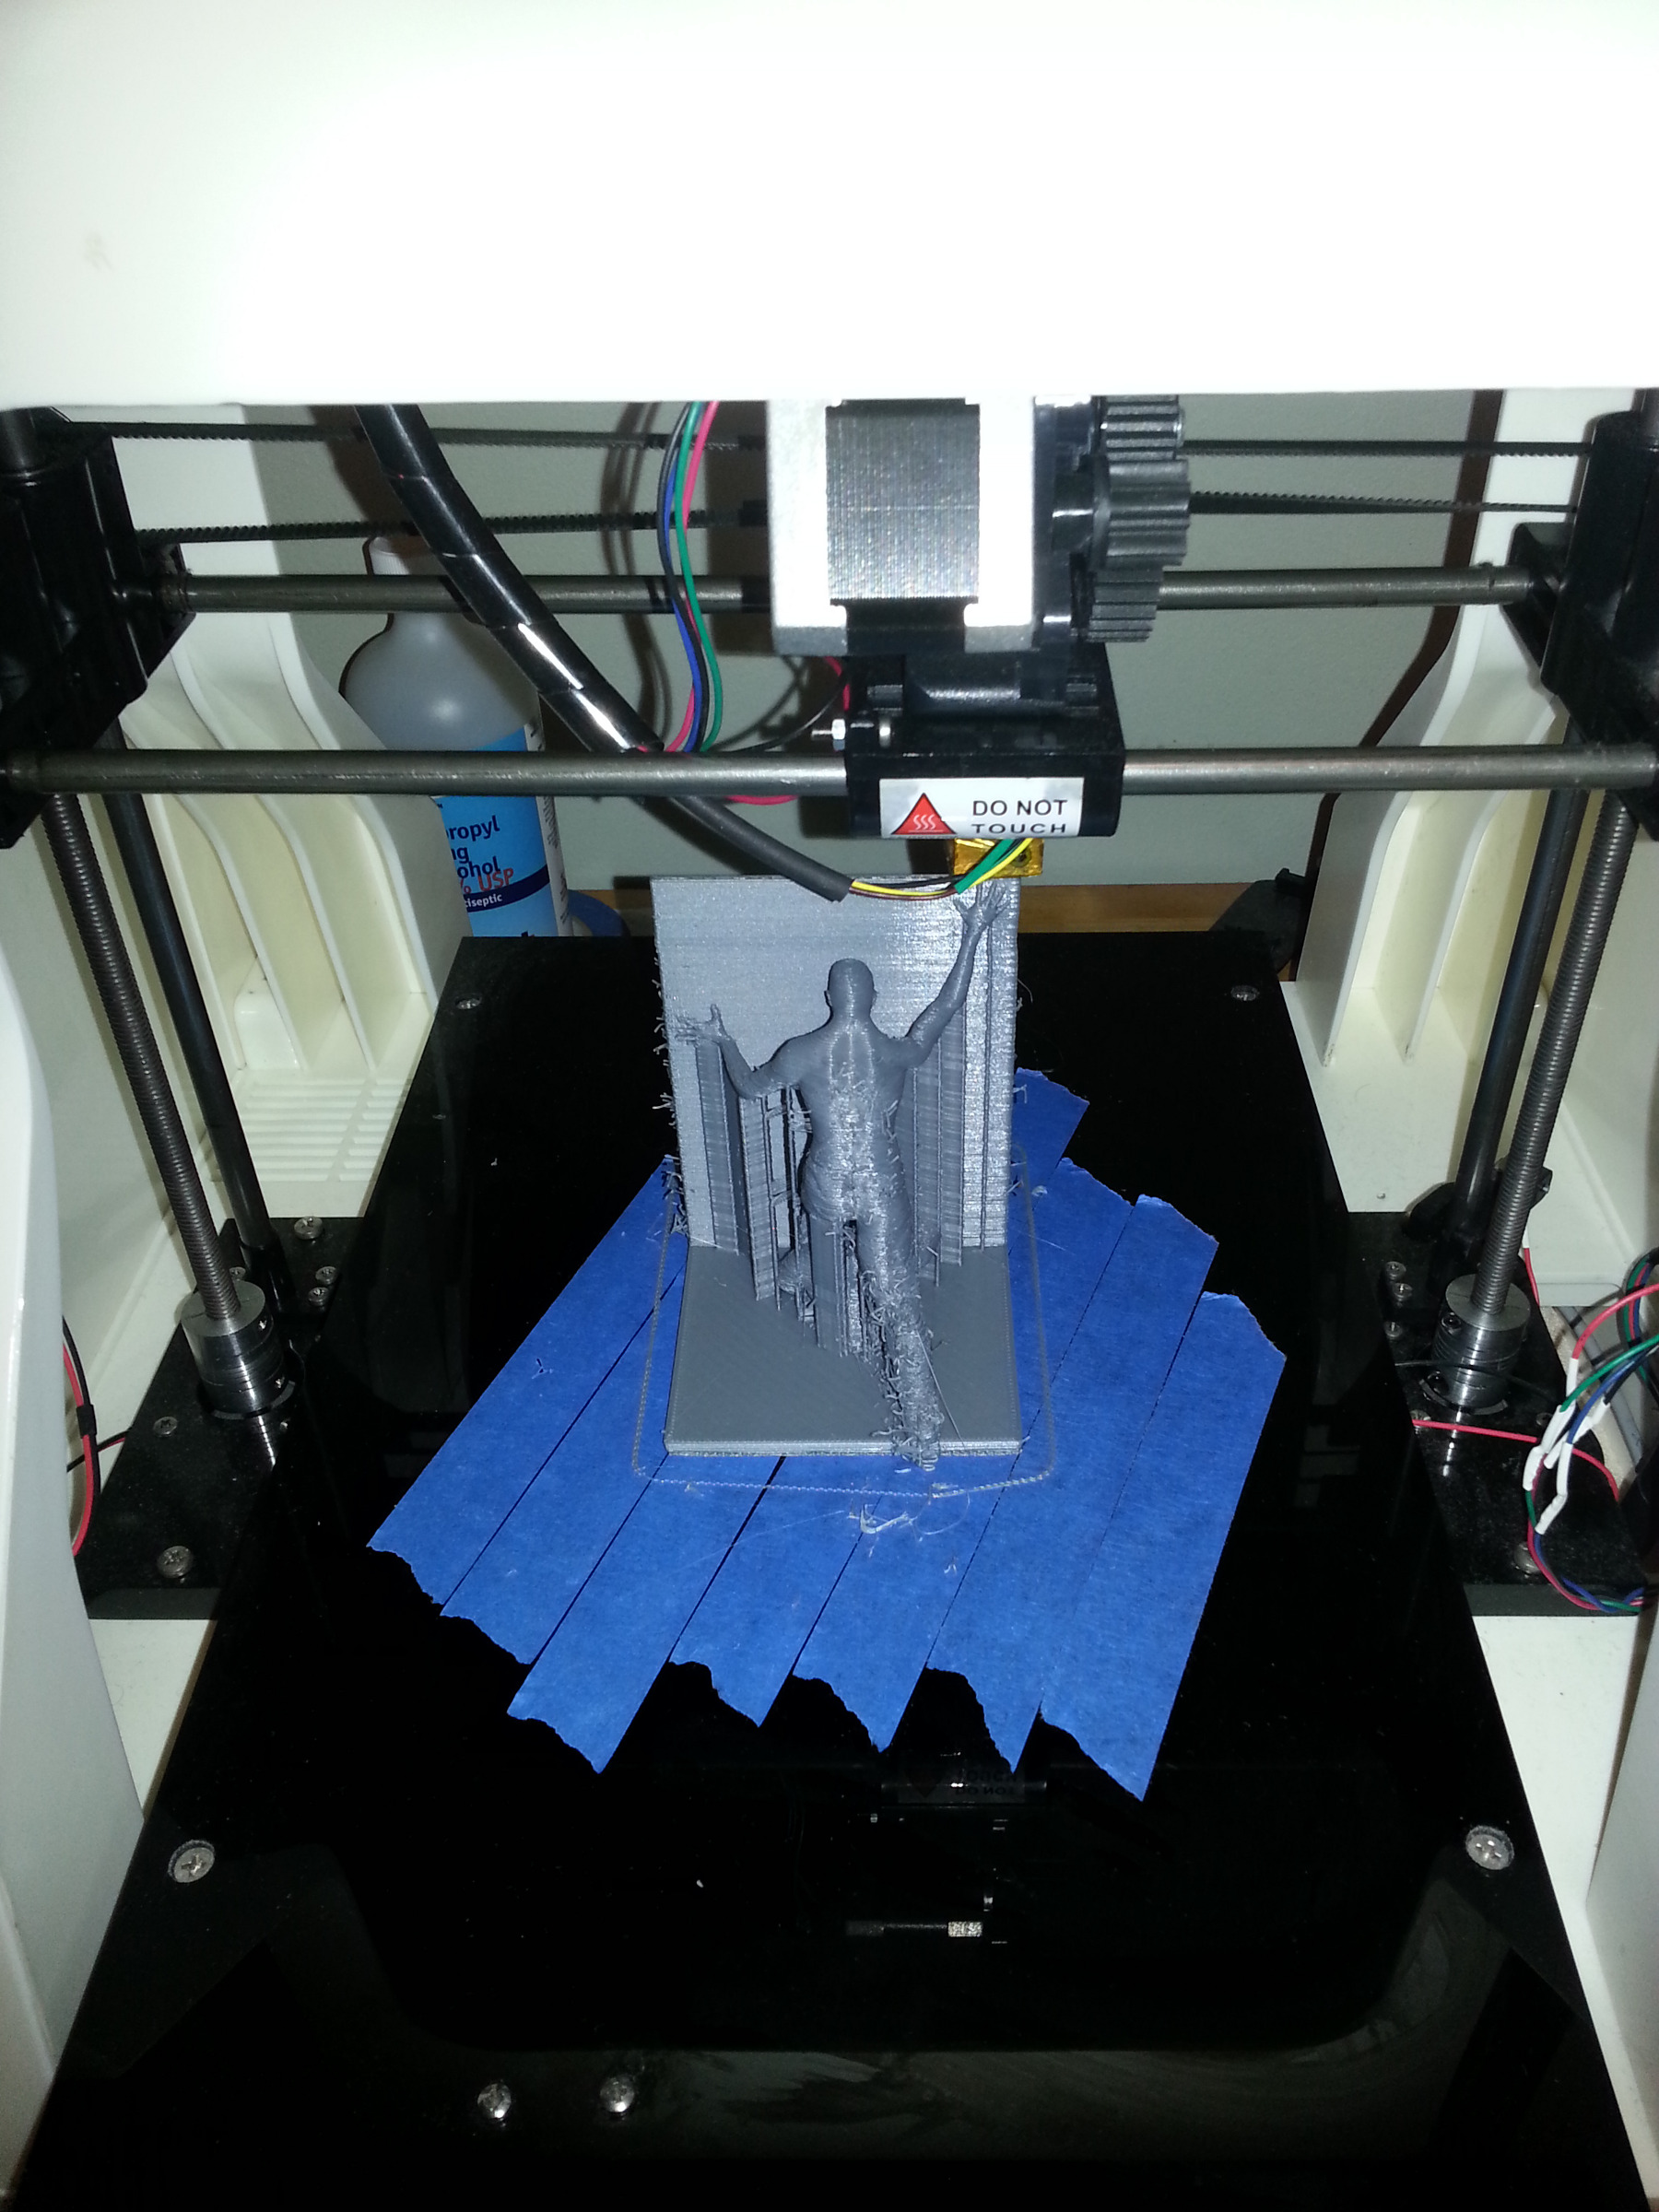 Printing the bookend